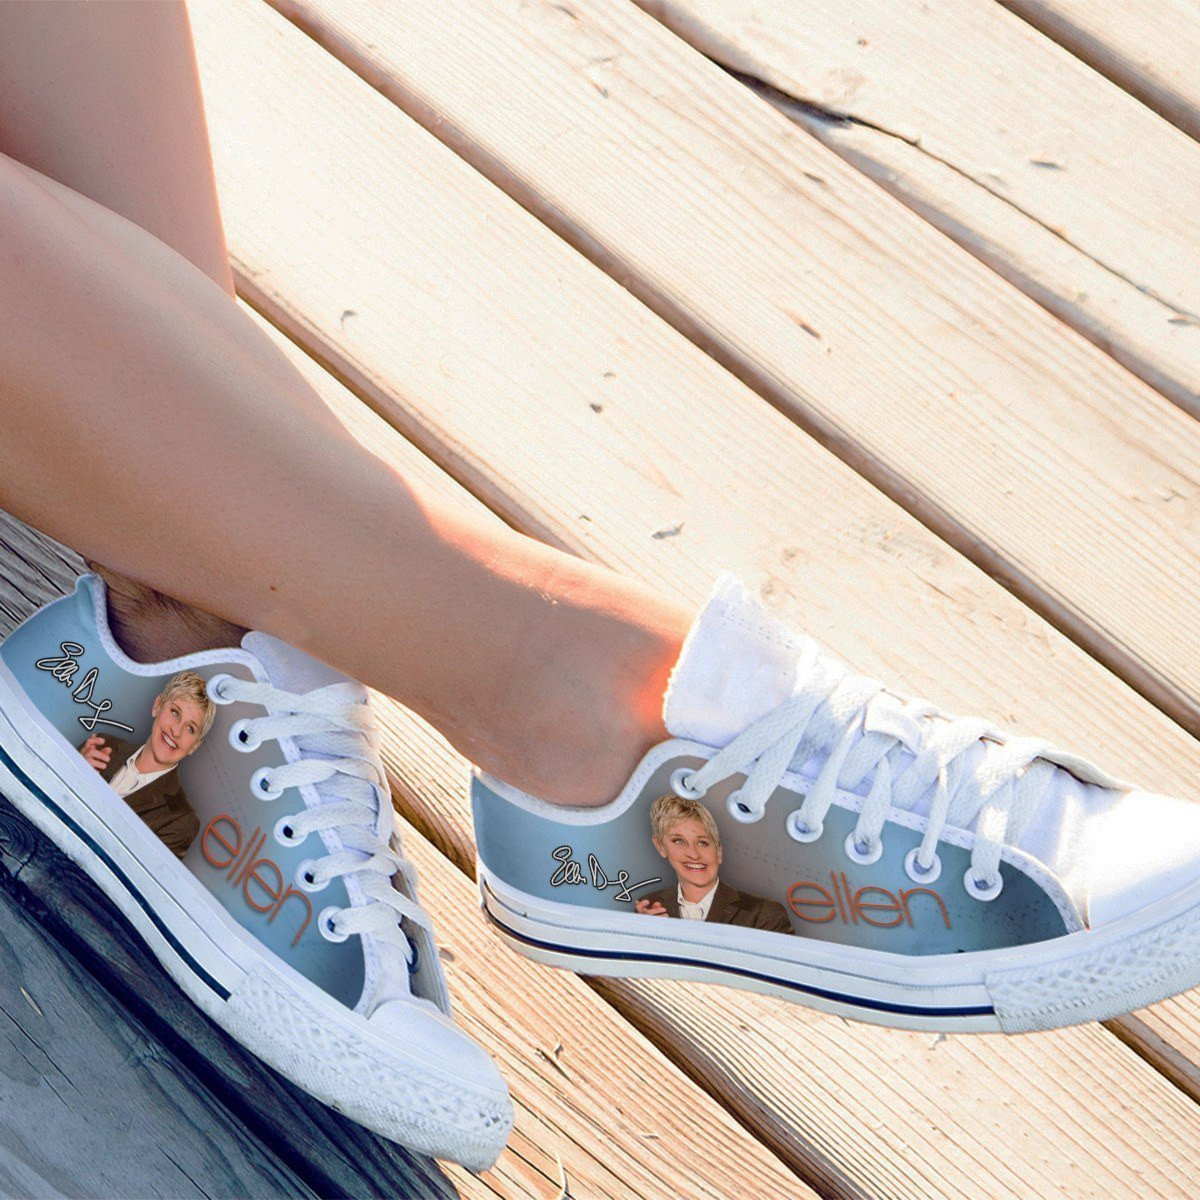 ellen degeneres ladies low cut sneakers